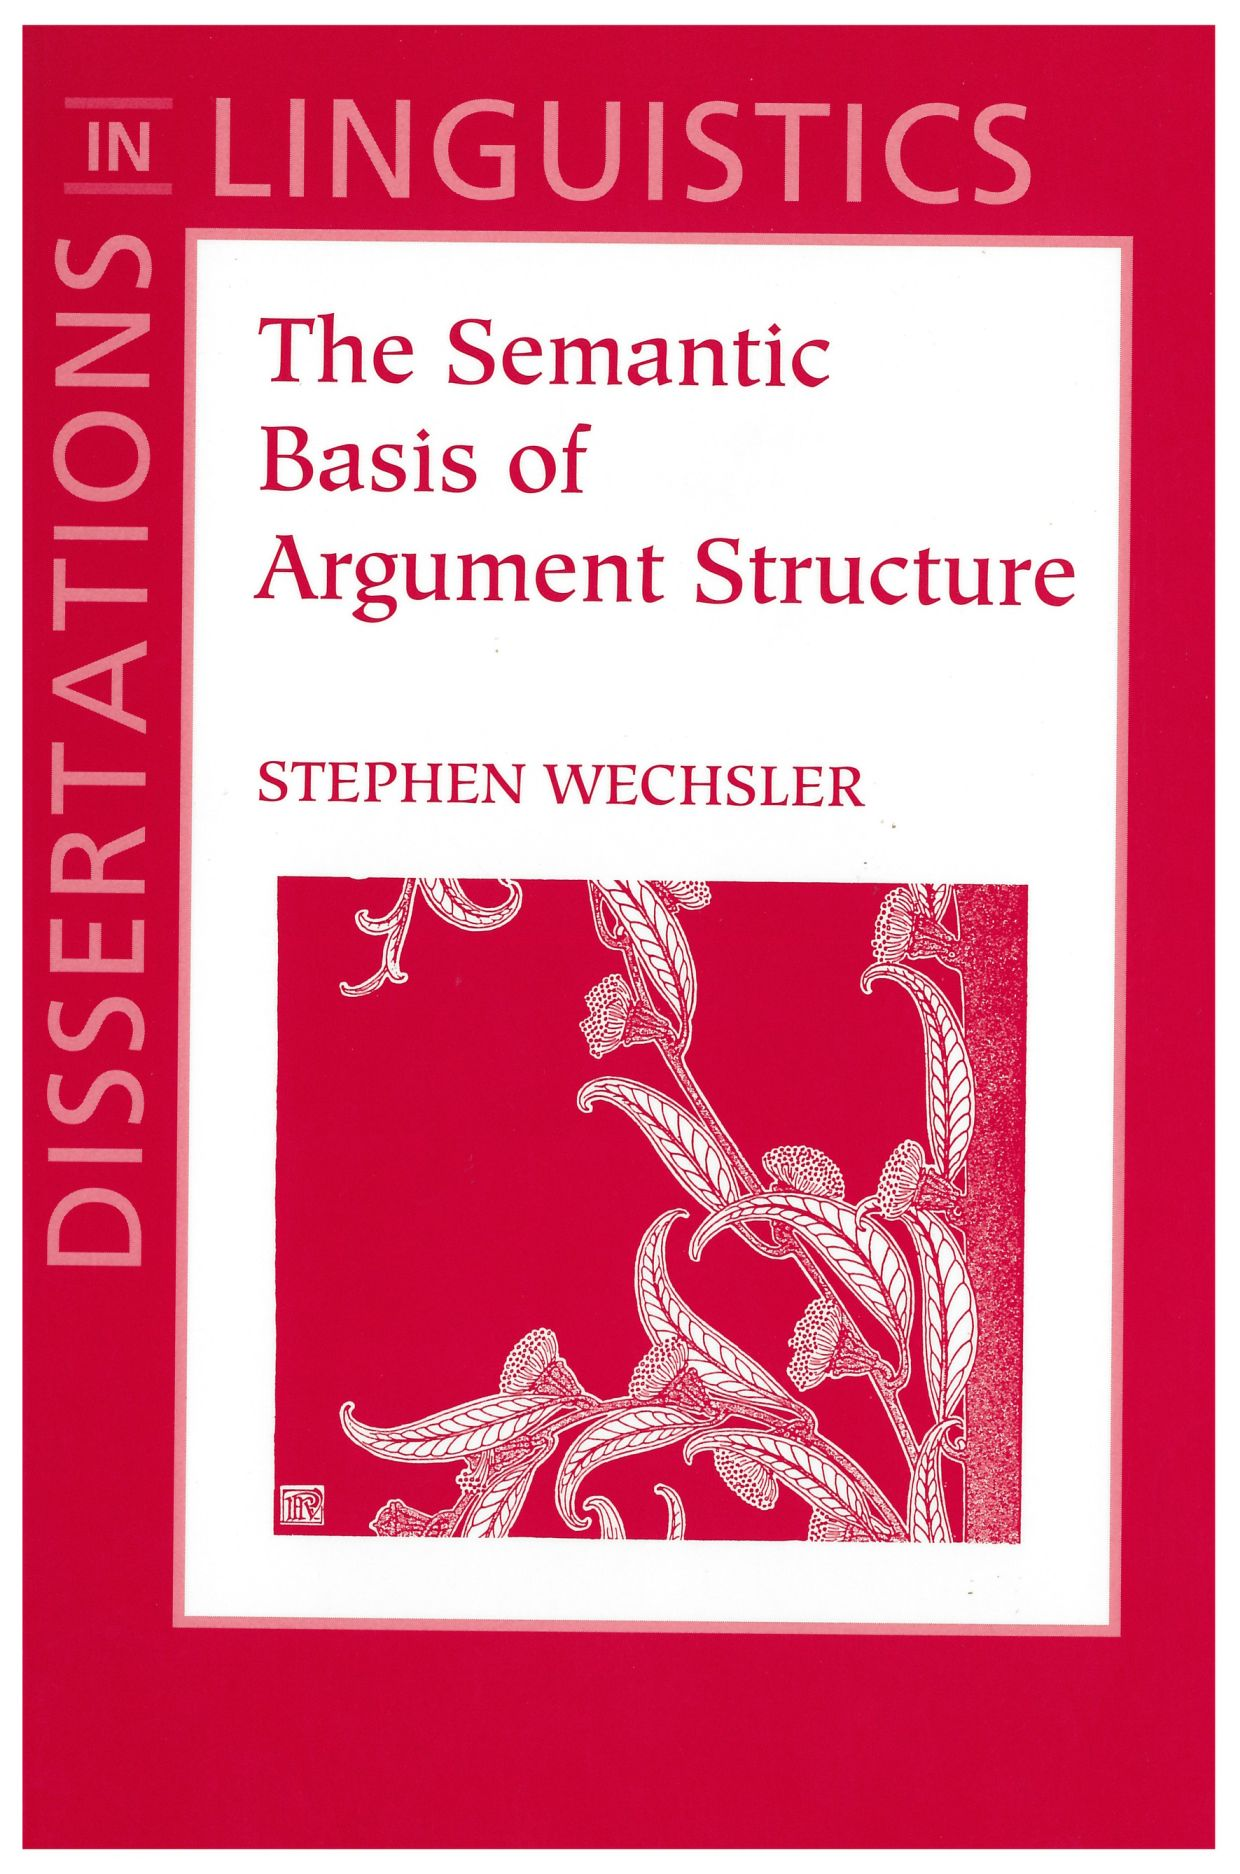 The Semantic Basis of Argument Structure